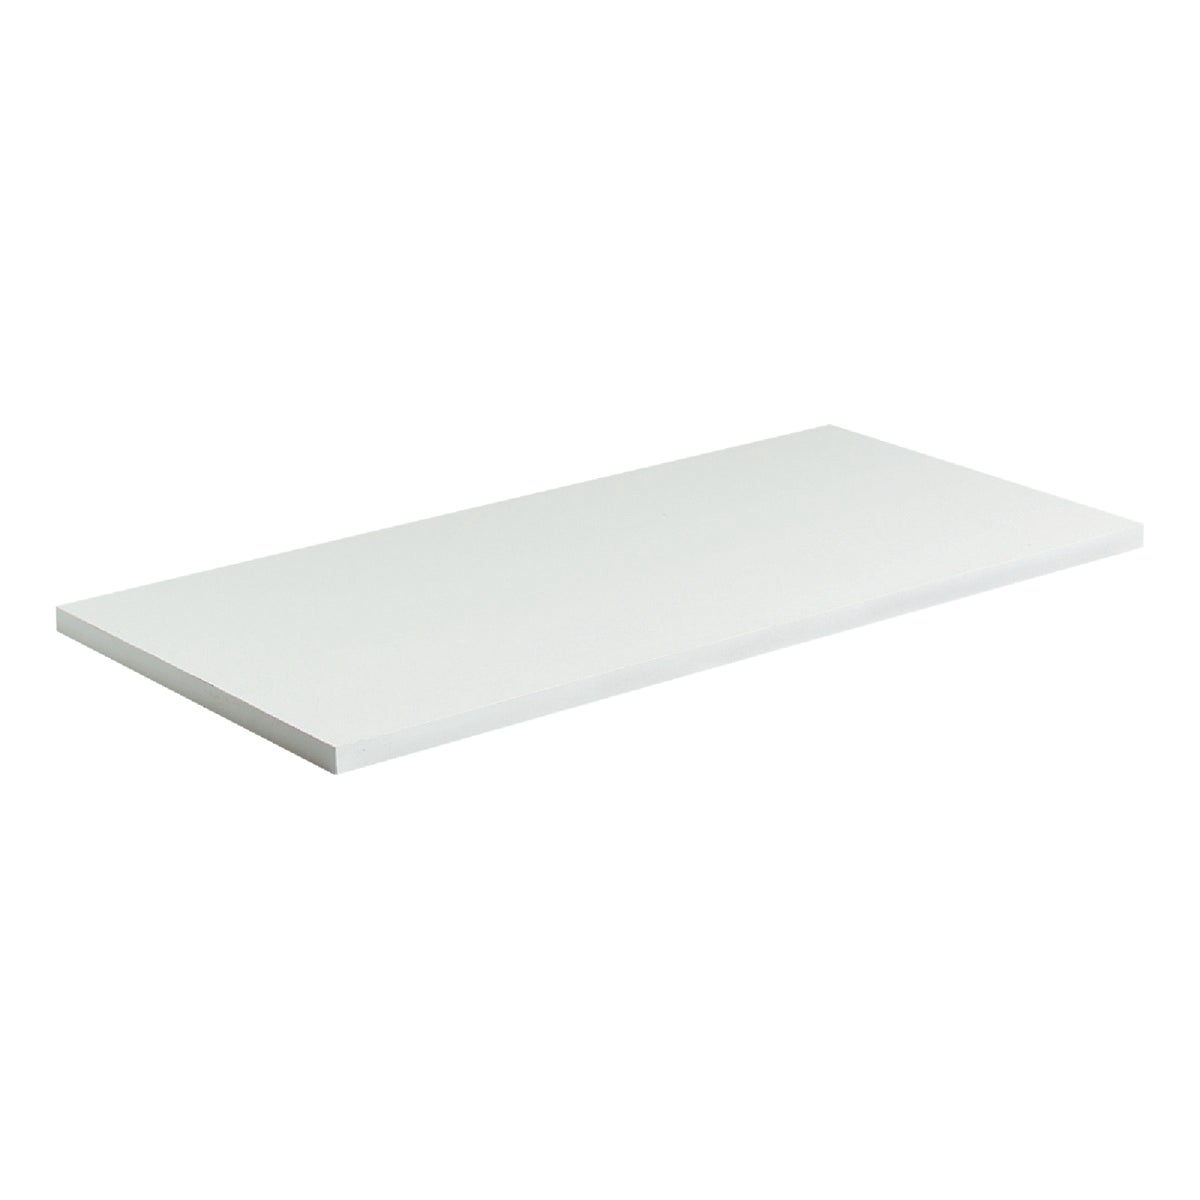 12X24 WHITE SHELF